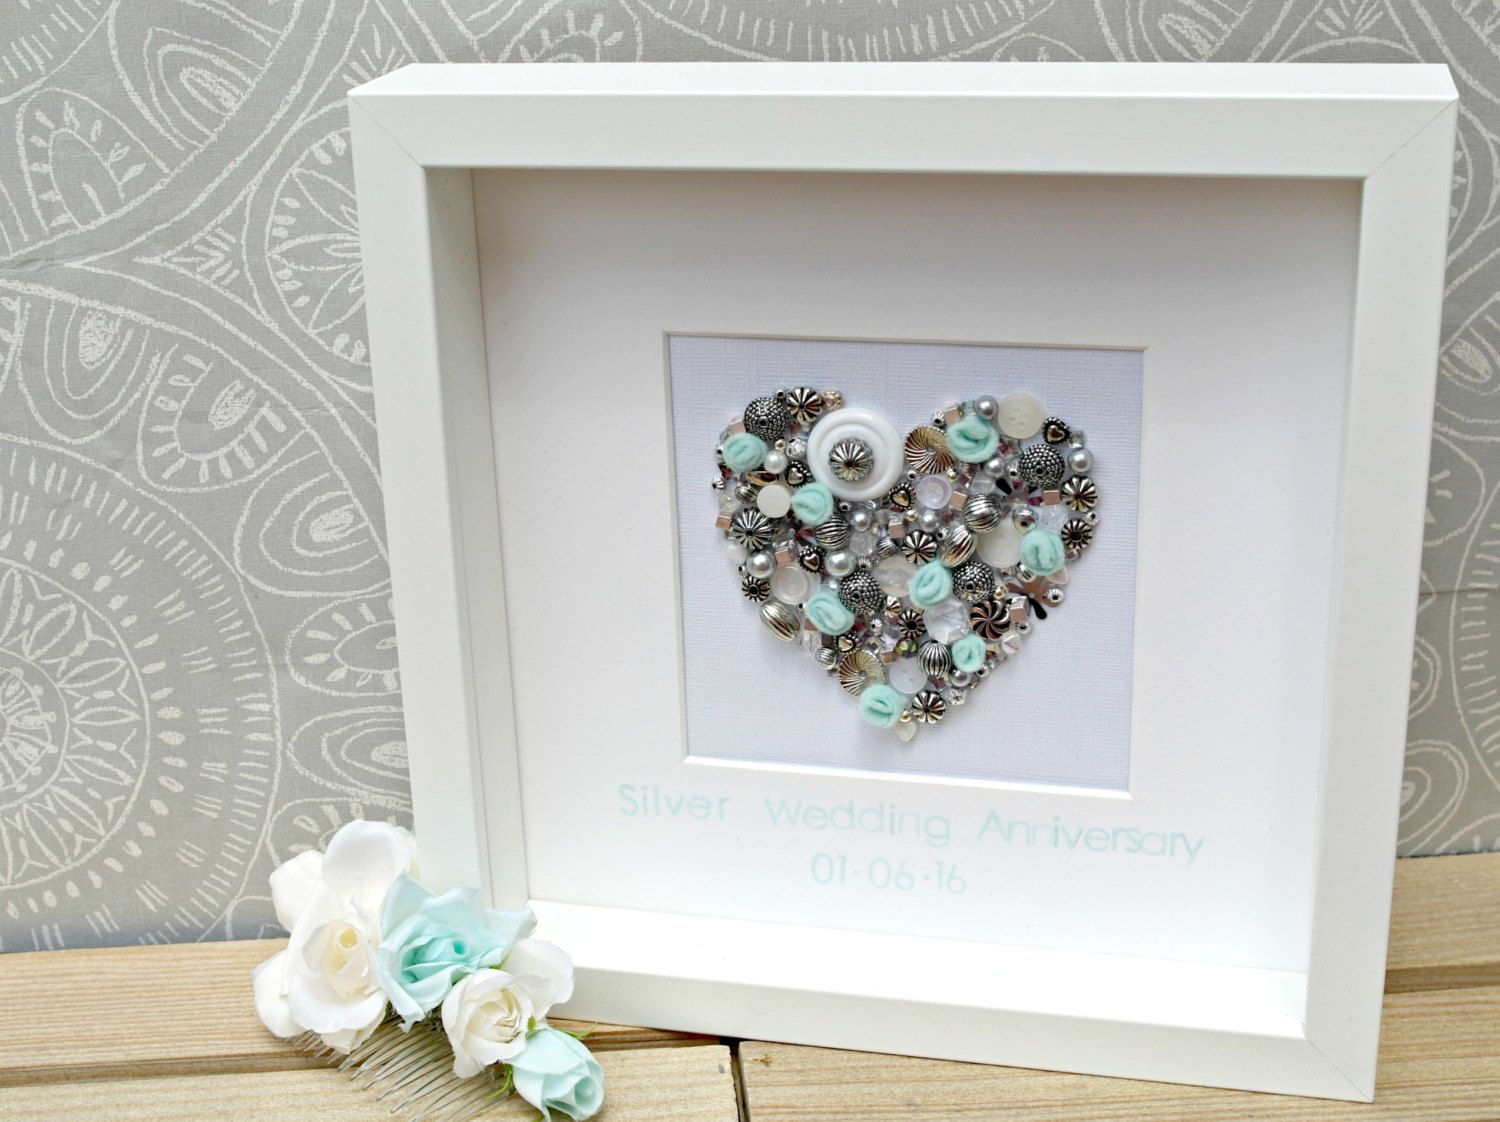 Silver Wedding Anniversary Gift. Sequin And Bead Heart